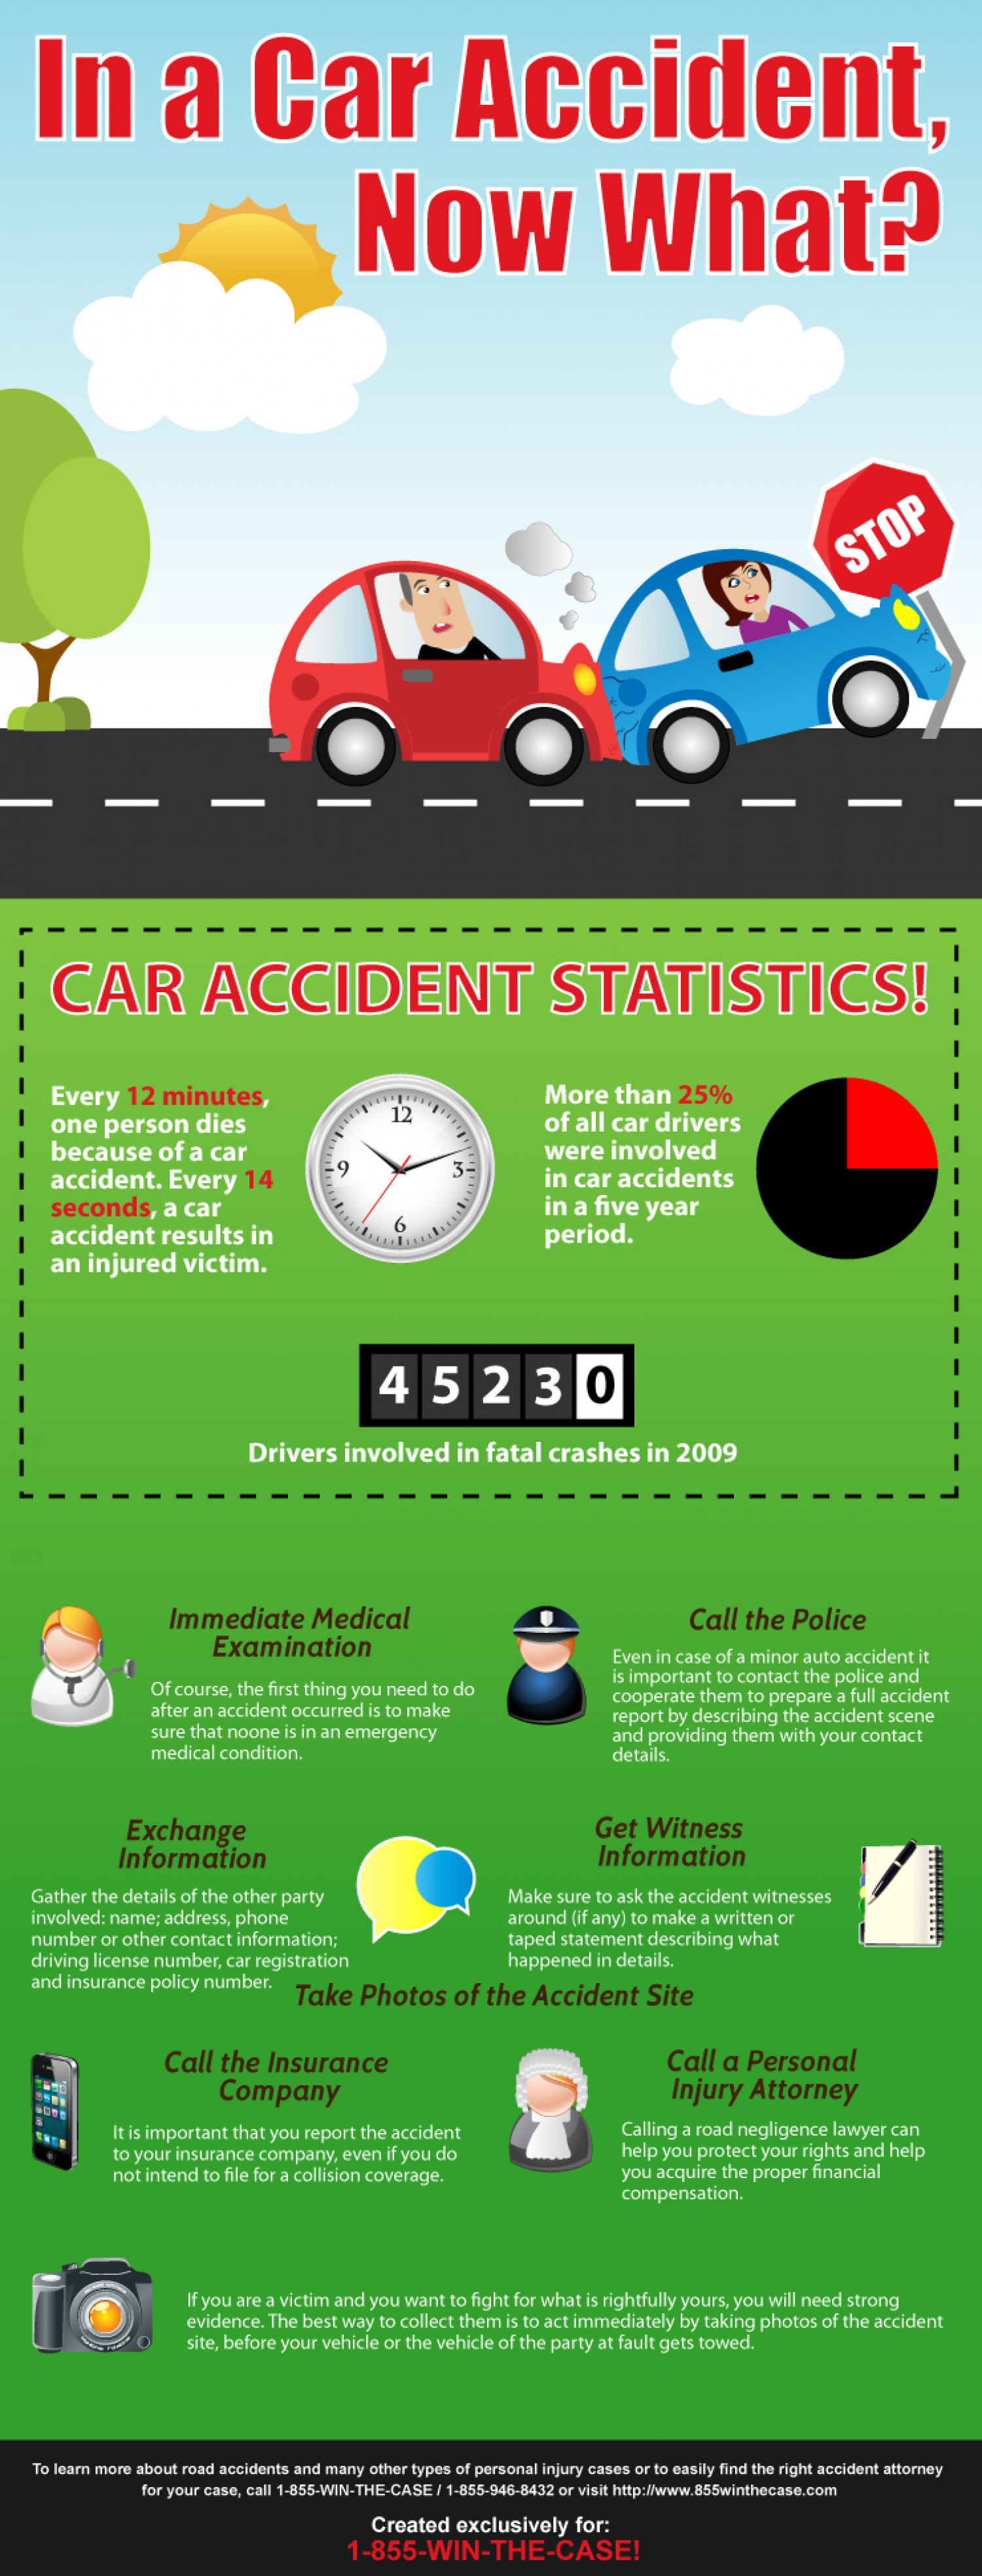 In a Car Accident, Now What? Infographic